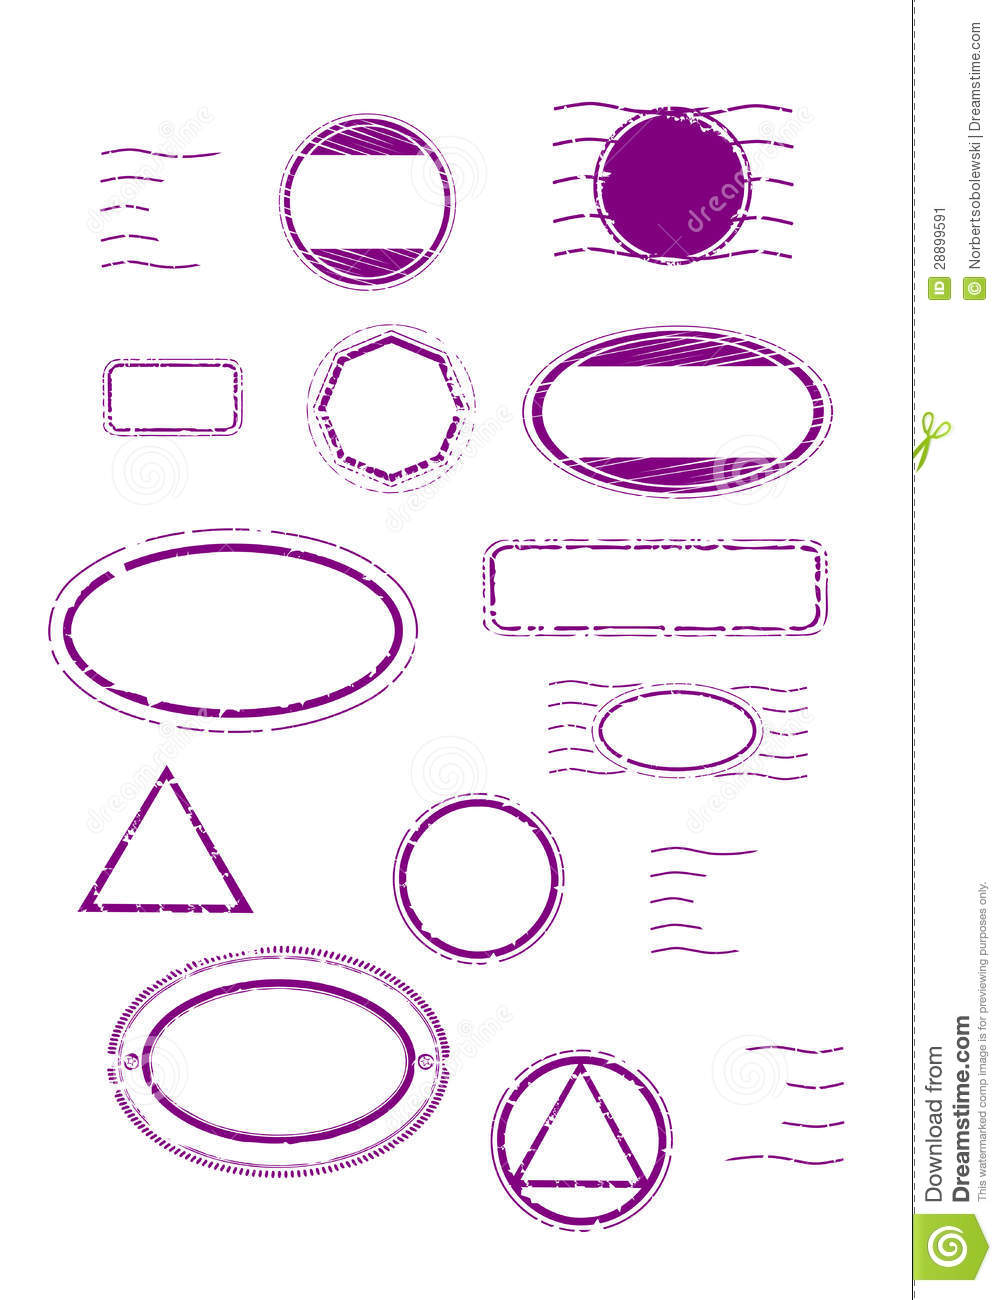 Blank Rubber Stamps Set Stock Image - Image: 28899591